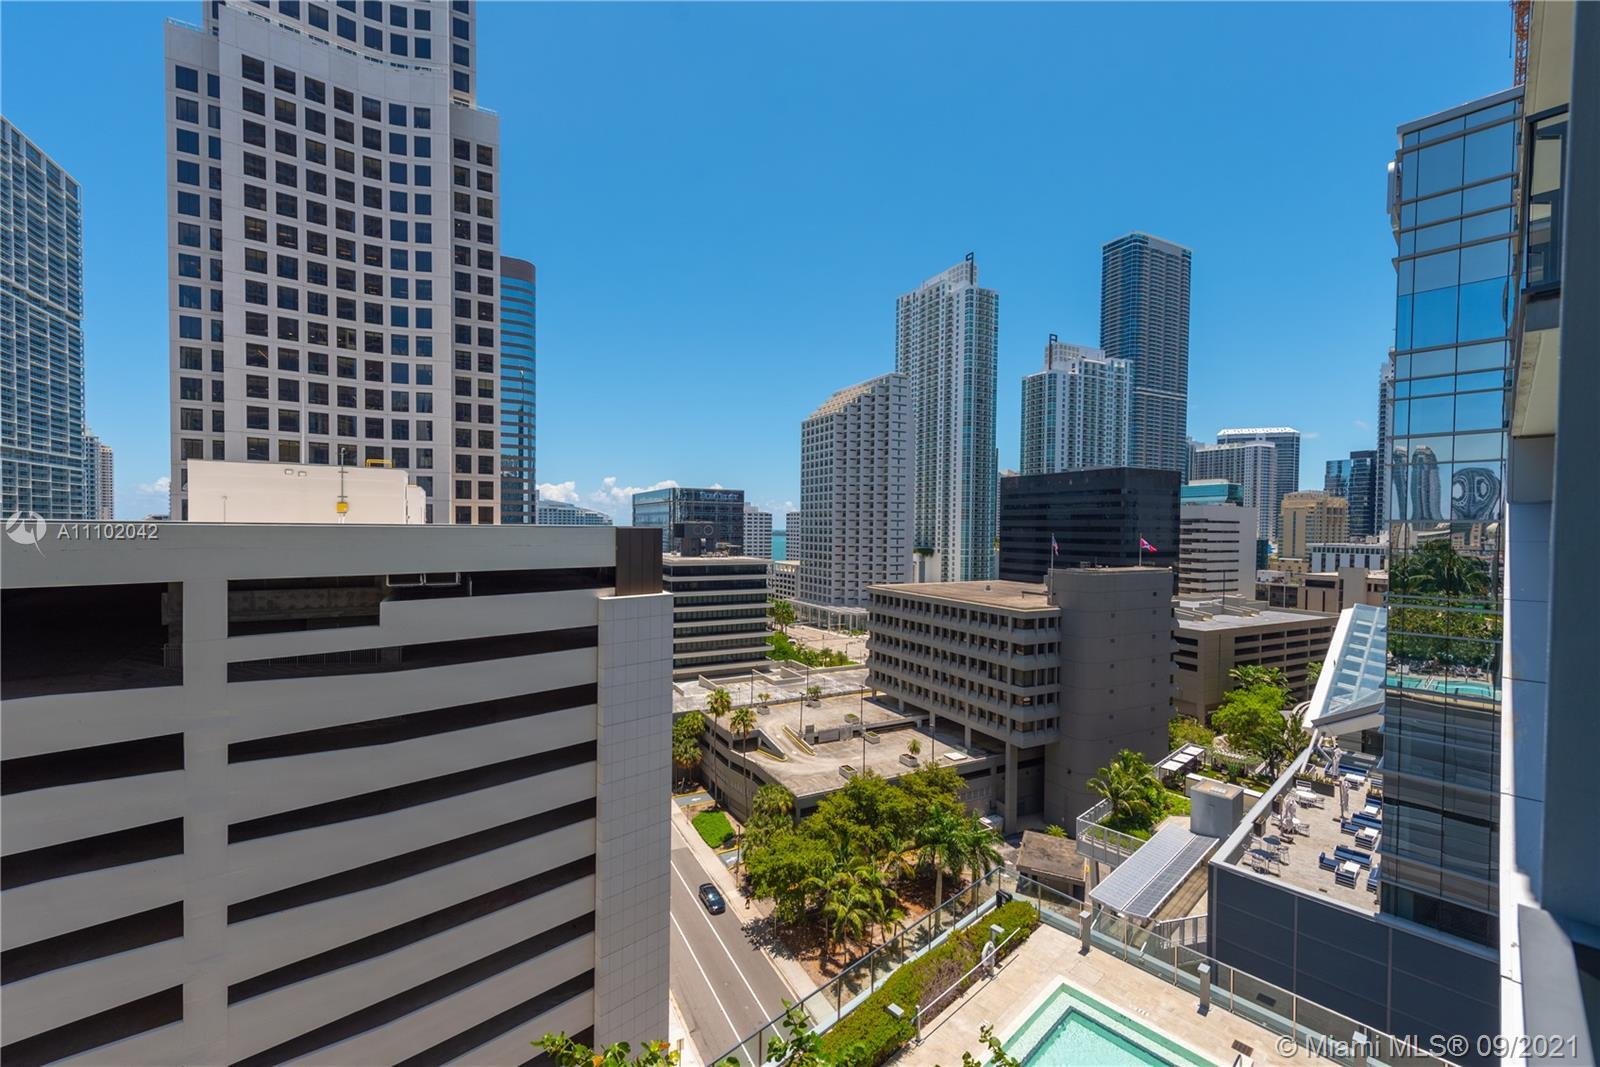 A one of a kind unit at Reach, Brickell City Centre! Spectacular 3/3.5 baths unit in the 03 line at